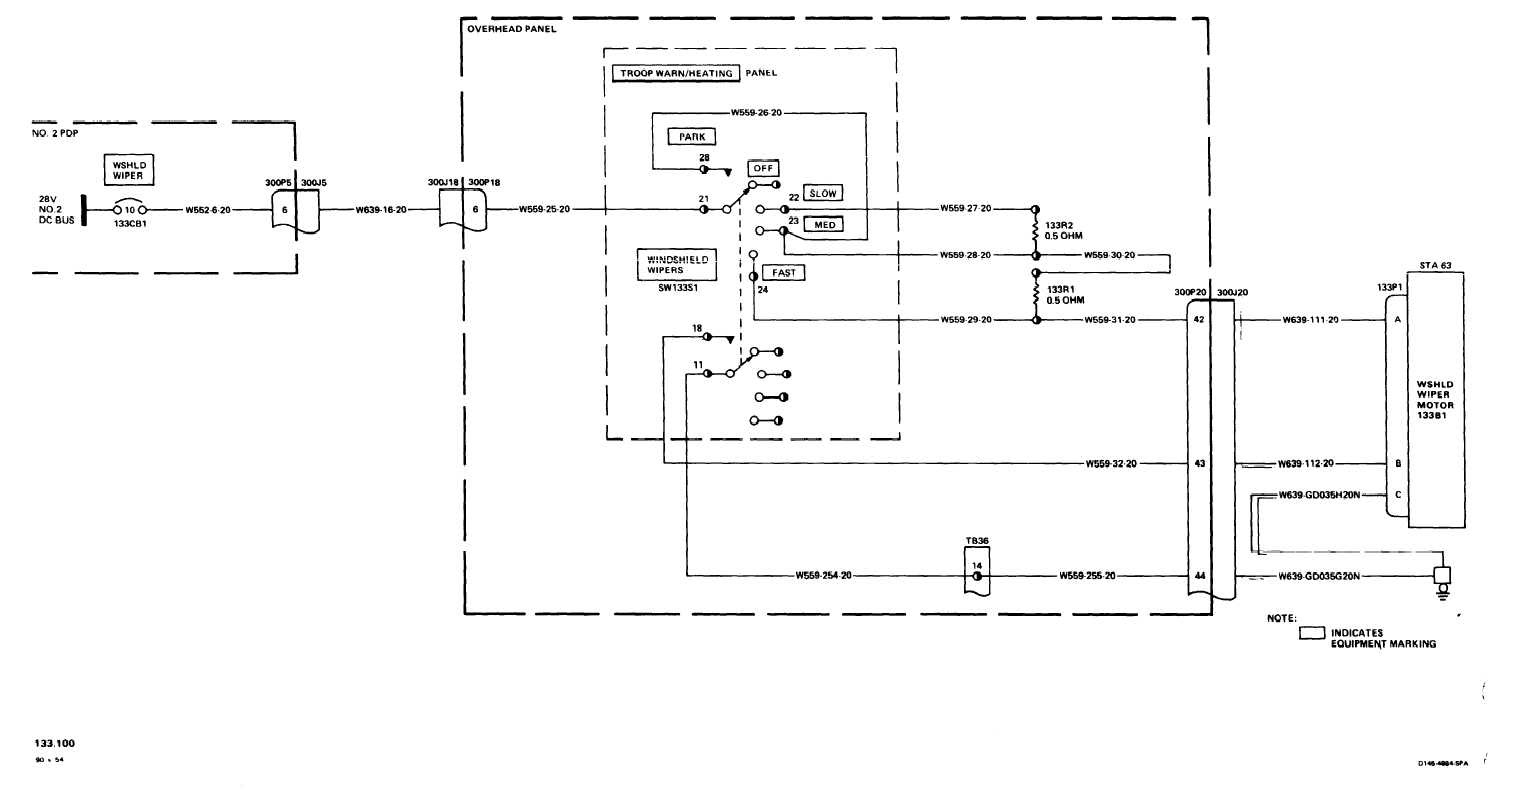 Diagram 1972 Ford F 250 Wiper Switch Wiring Diagram Full Version Hd Quality Wiring Diagram Diagrampridea Camperlot It